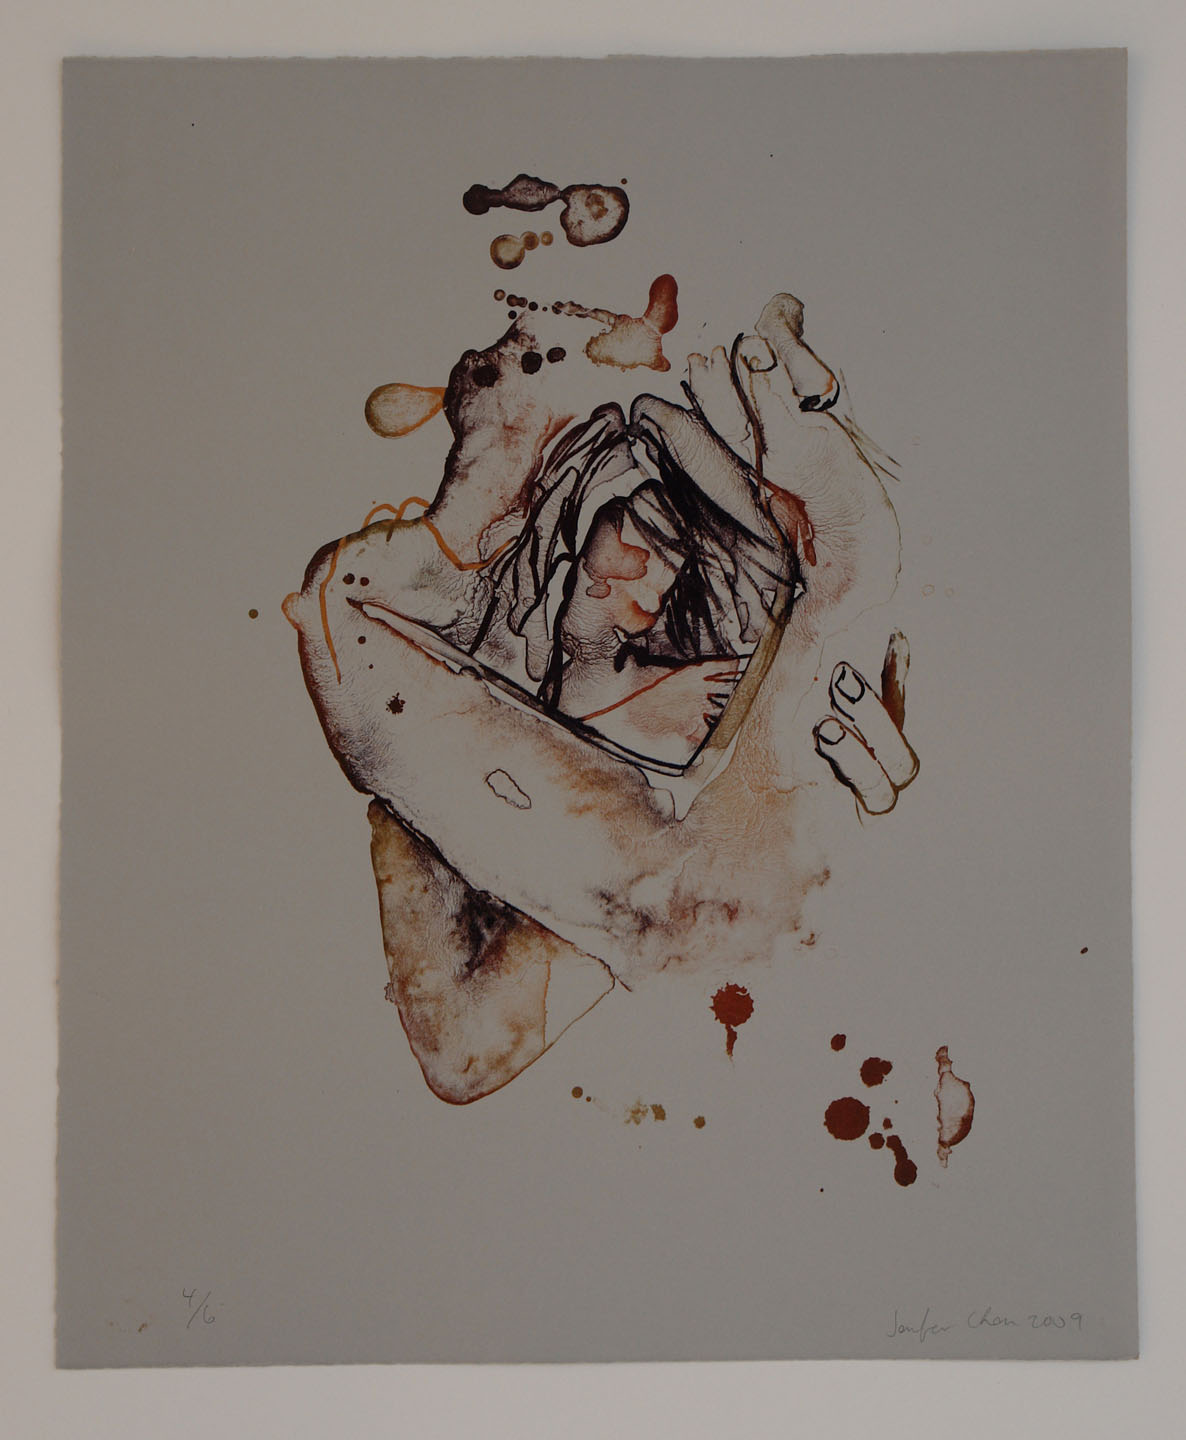 Untitled (Muffled);2009    Reductive Lithography, 18 x 15 in